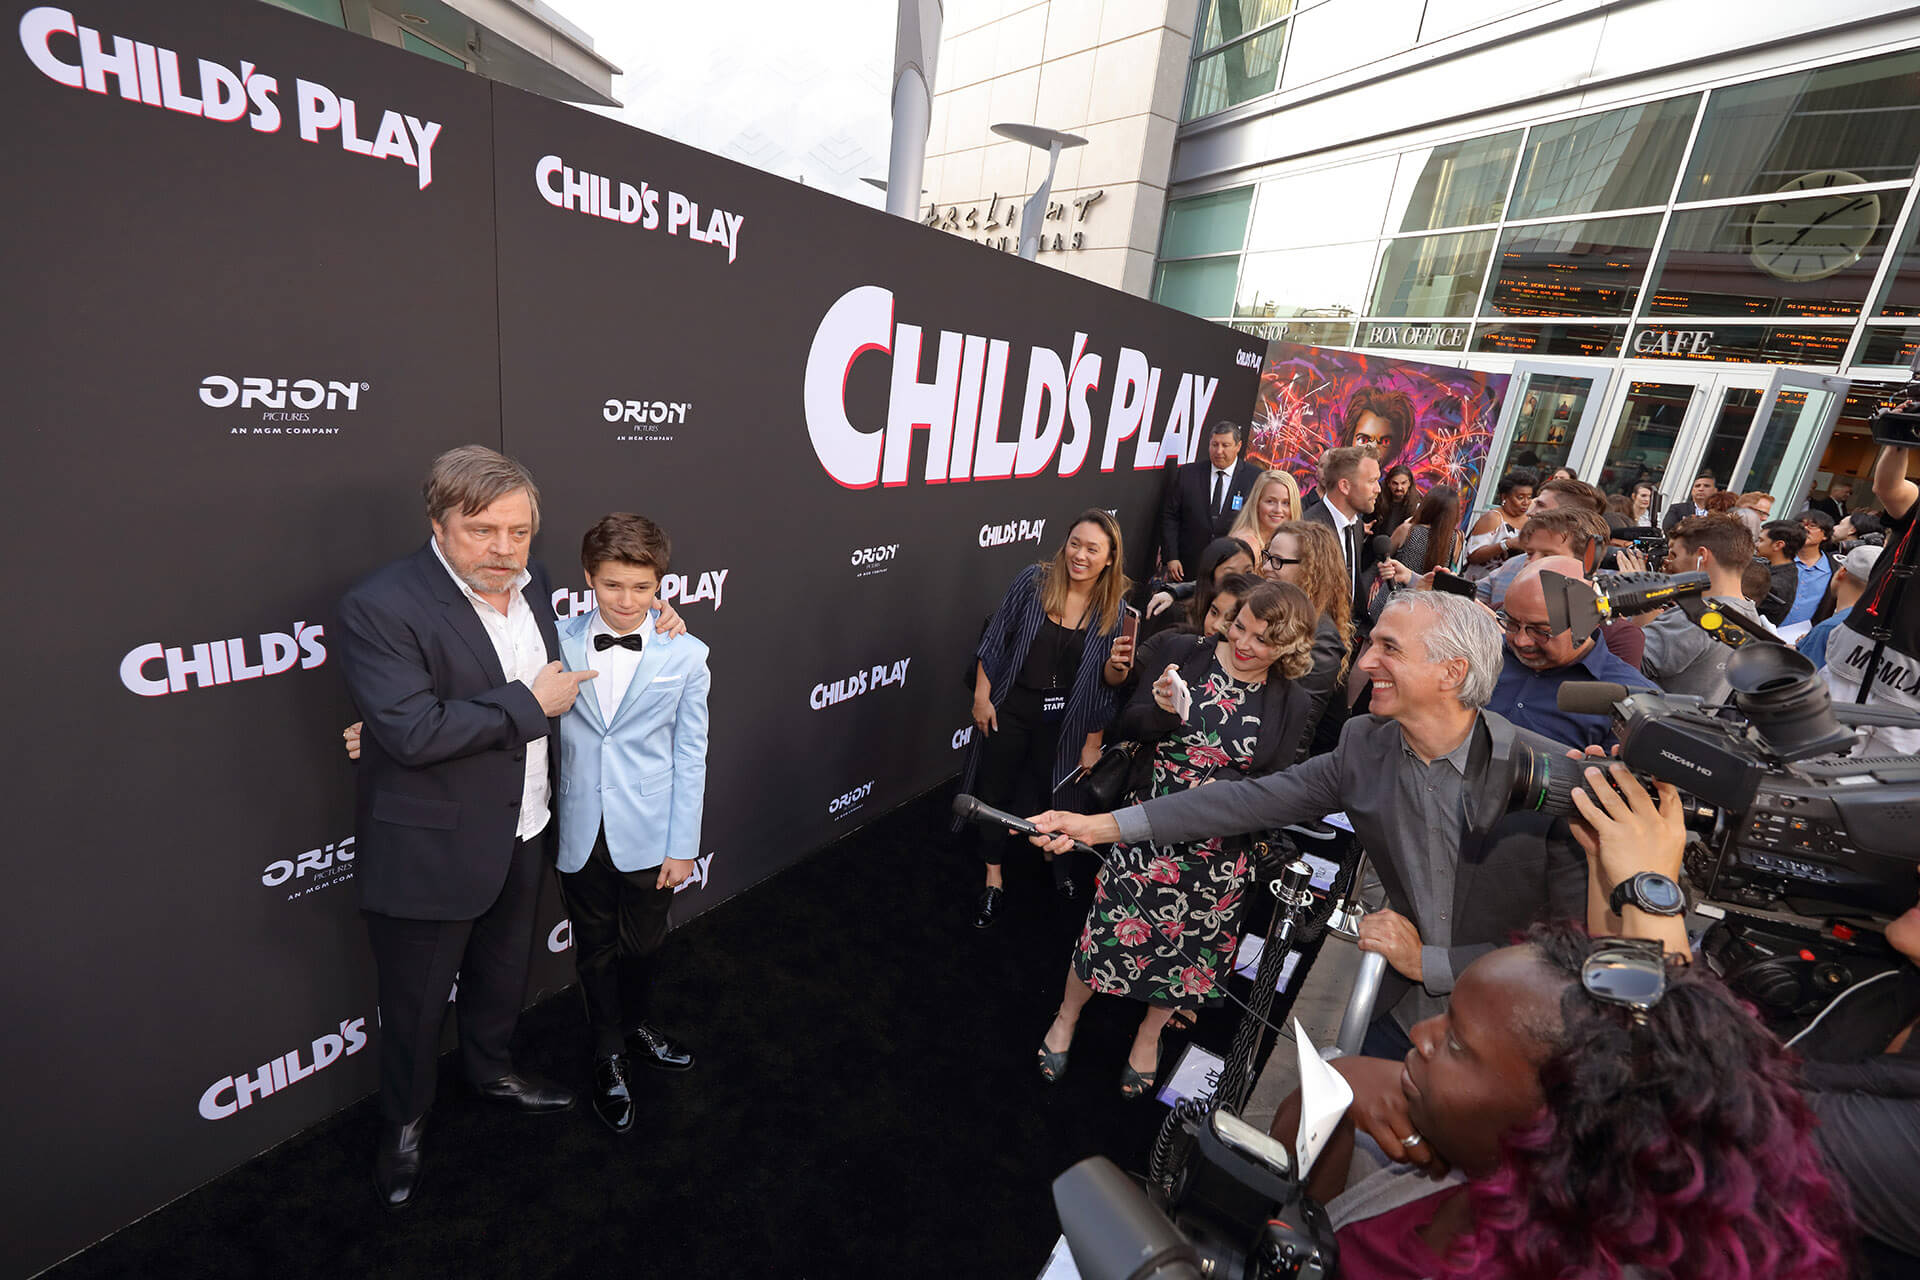 Child's Play Movie Premiere Los Angeles JG2 Collective